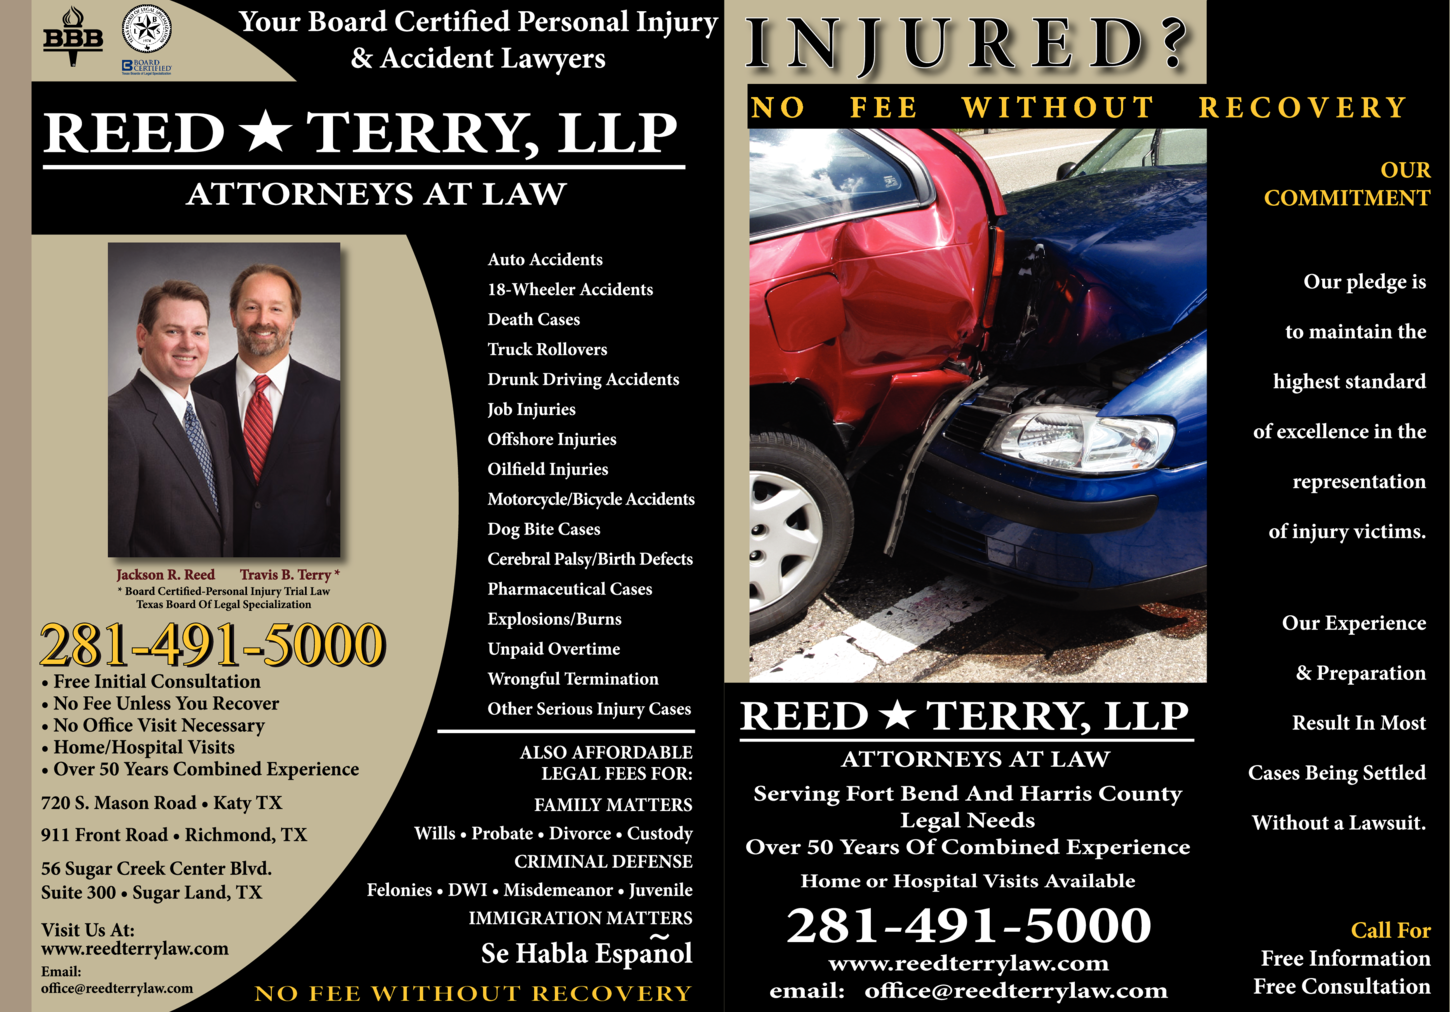 Reed & Terry LLP Attorneys at Law